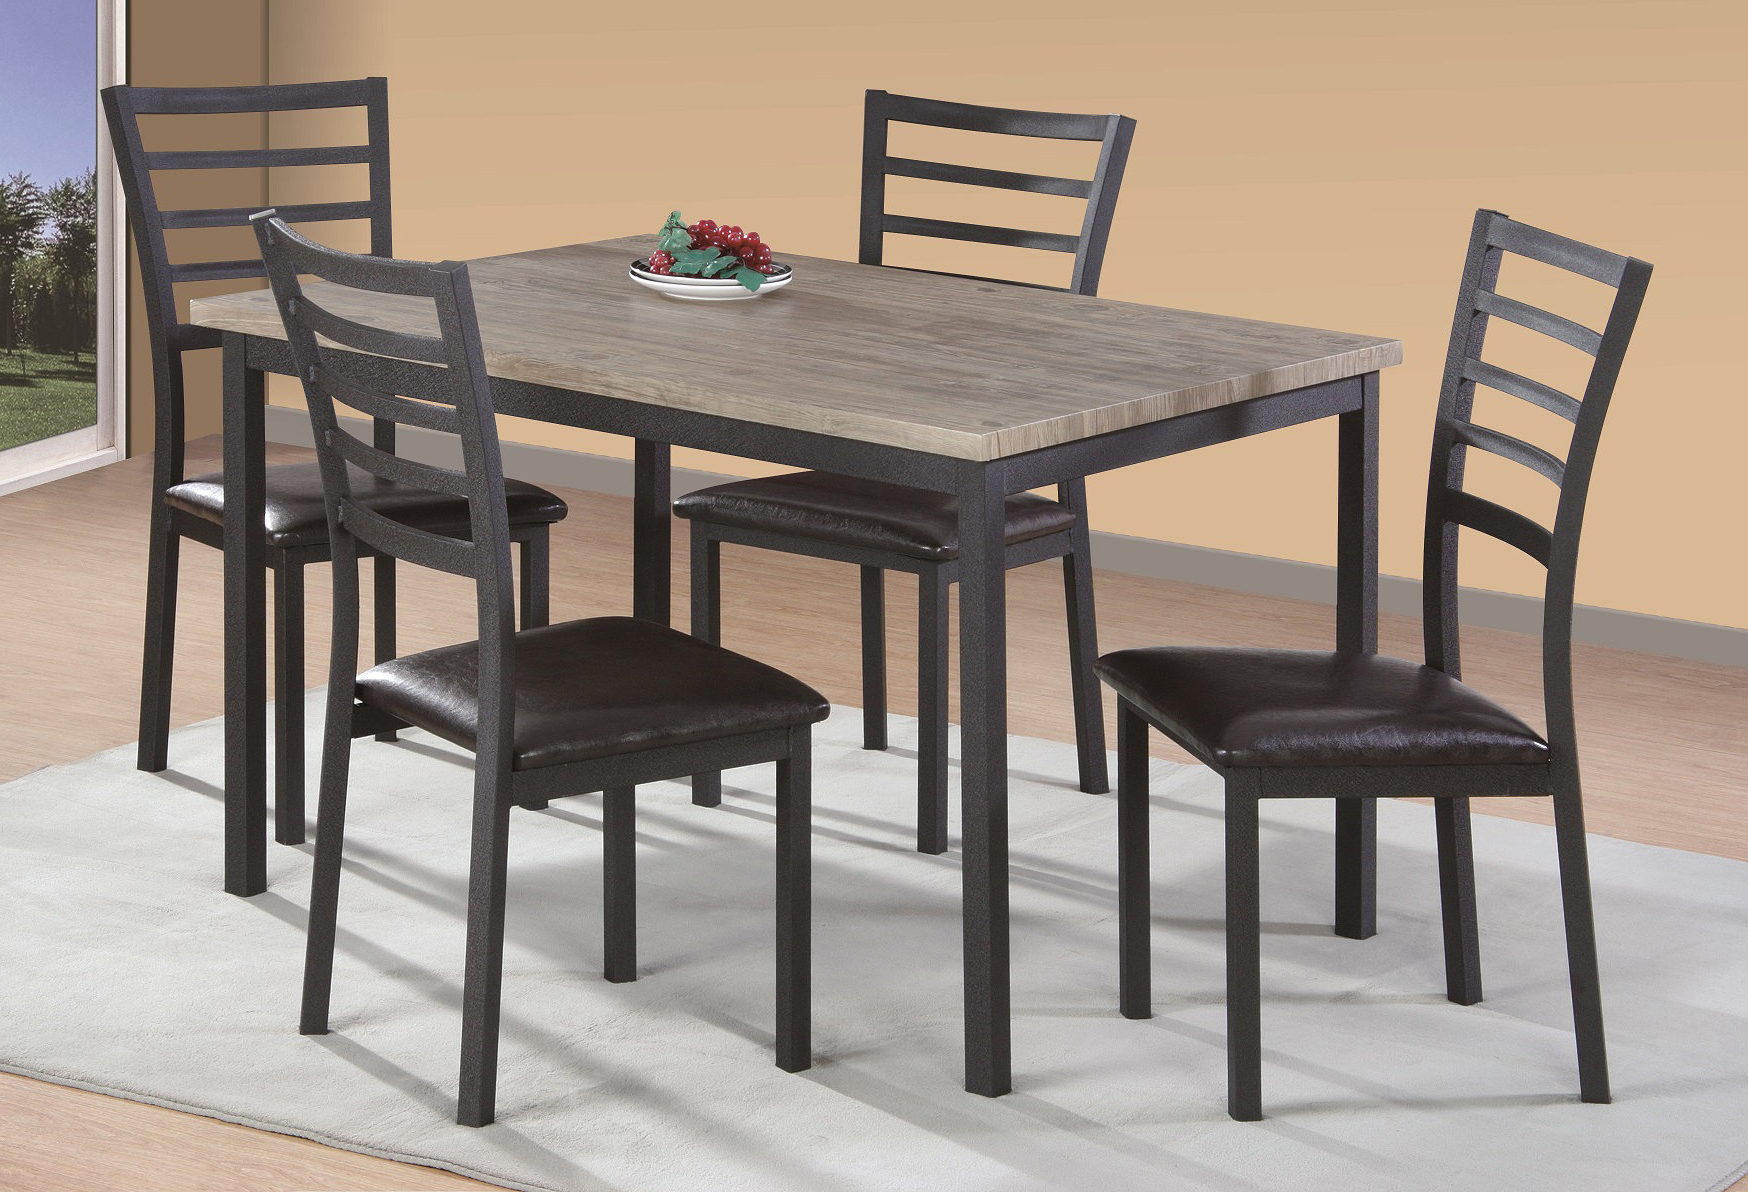 Wayfair Intended For Famous Pattonsburg 5 Piece Dining Sets (View 25 of 25)